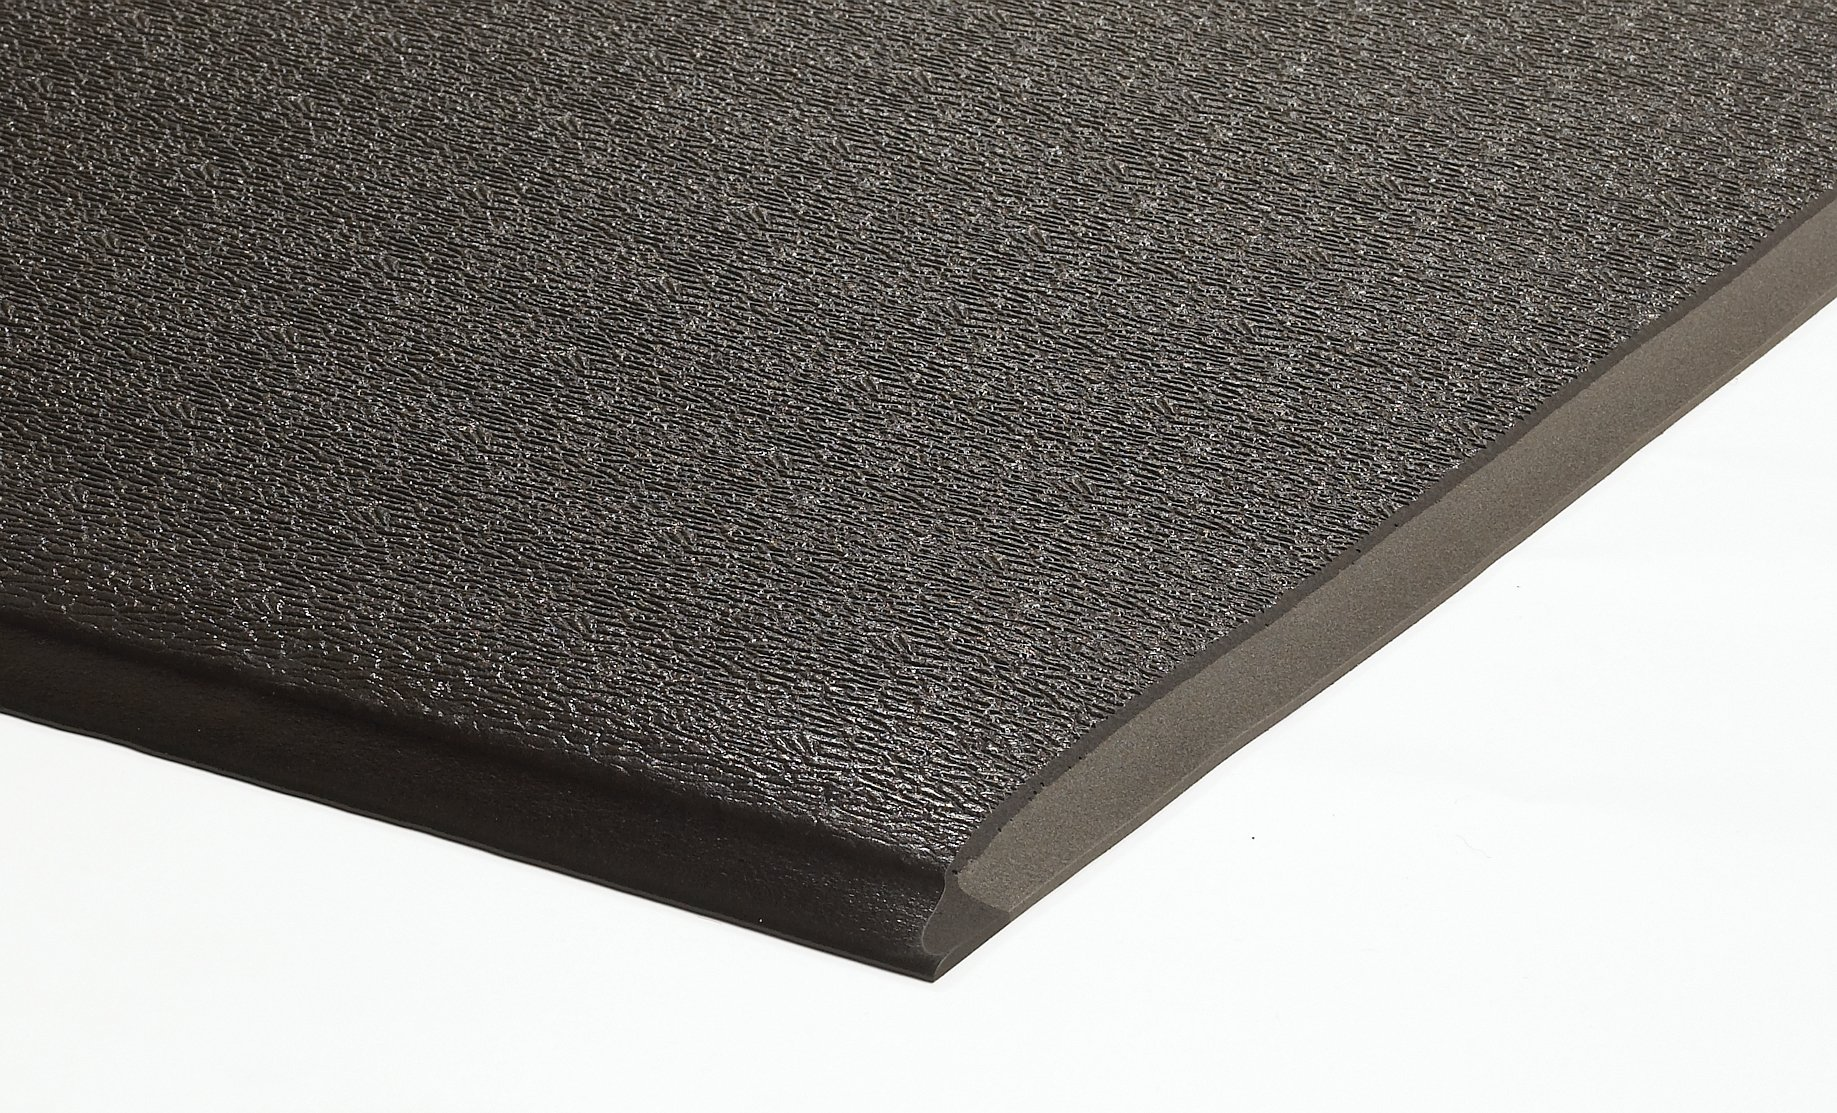 M+A Matting 911 Charcoal PVC Foam Sure Cushion Heavy Duty Anti-Fatigue Mat, 3' Length x 2' Width x 1/2'' Thick, For Dry Area